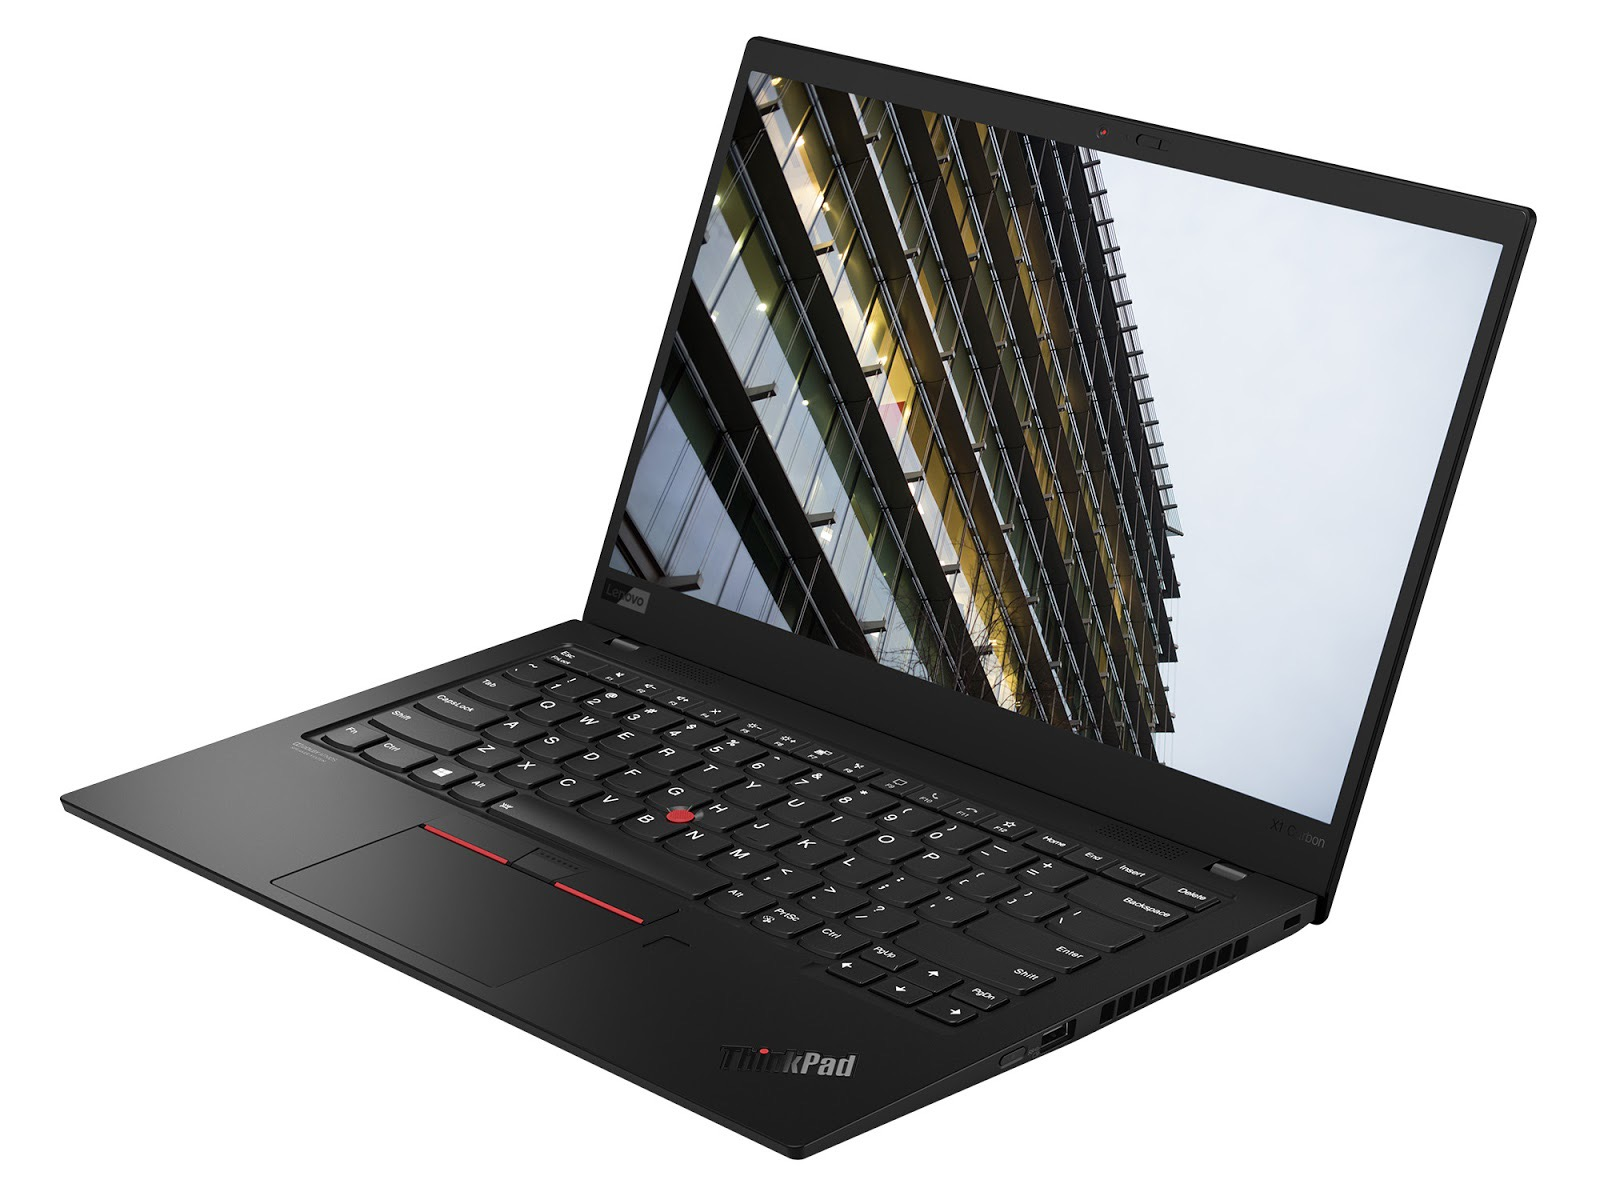 Фото 3. Ноутбук Lenovo ThinkPad X1 Carbon Gen 8 Black (20U90001RT)